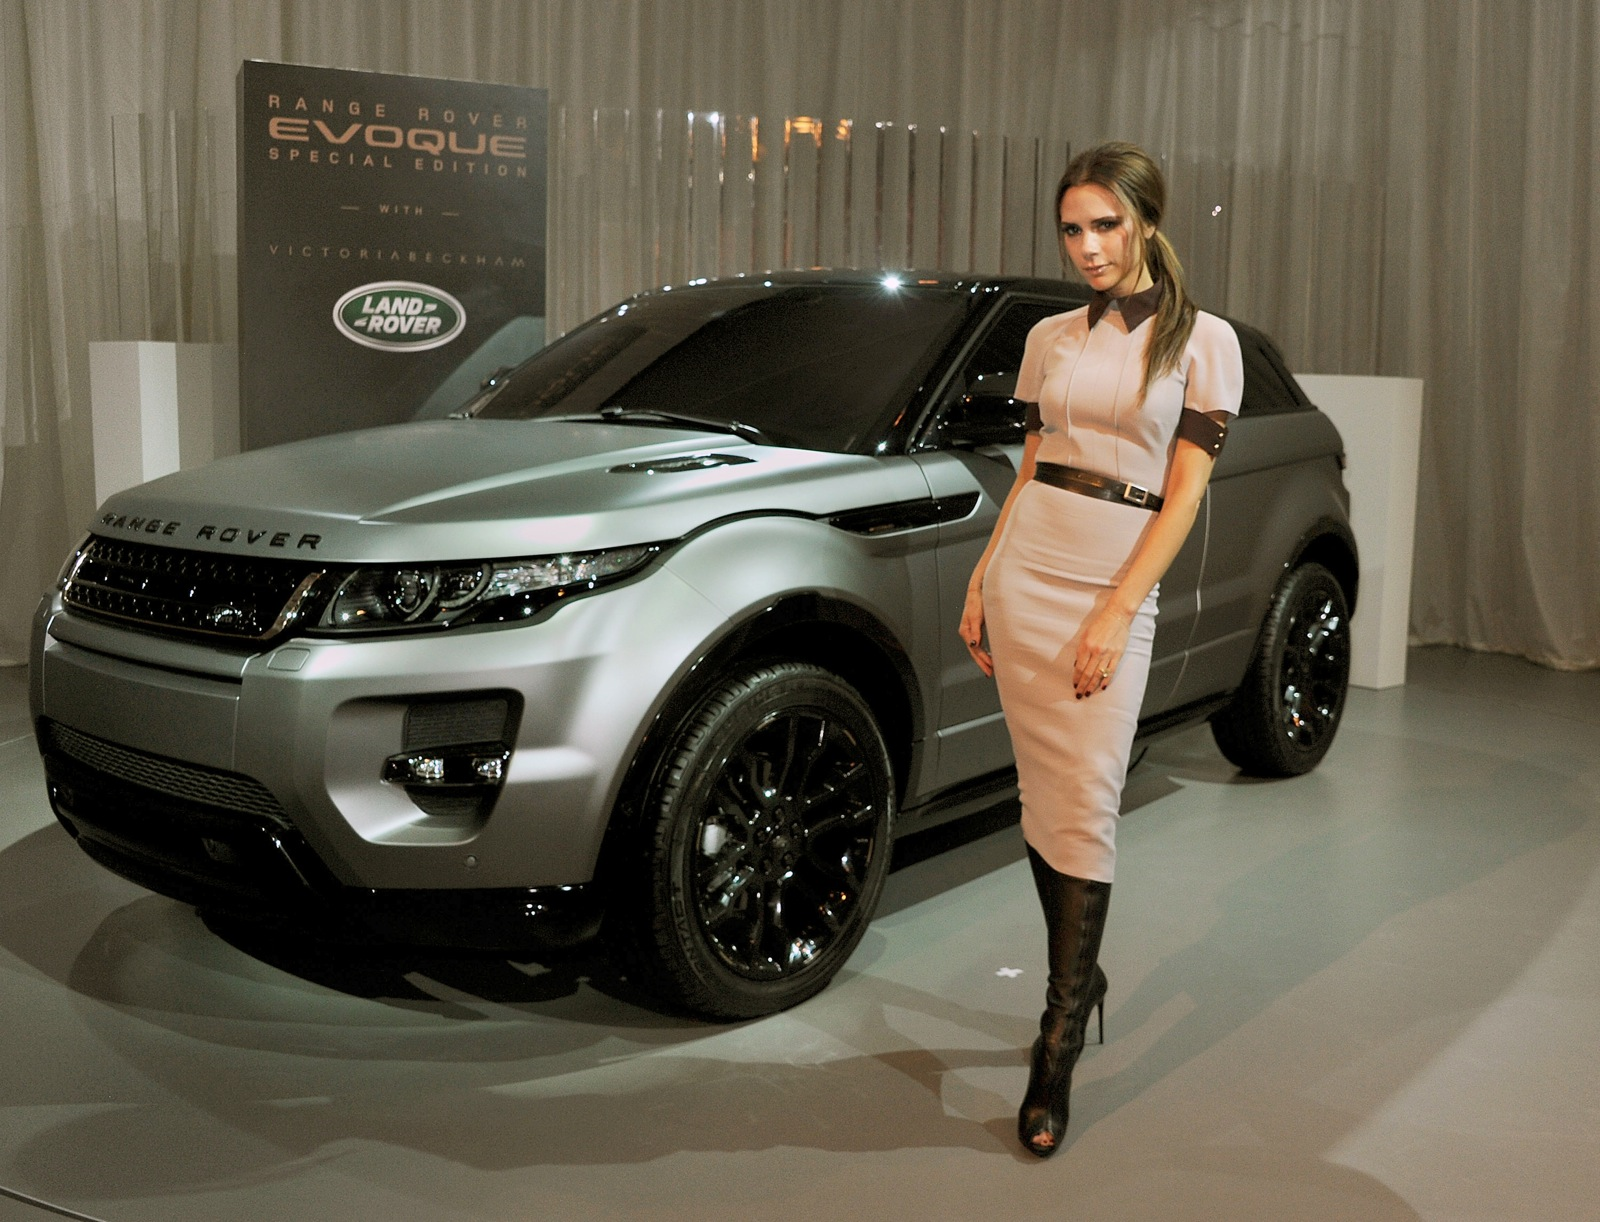 land rover announces range rover evoque special edition. Black Bedroom Furniture Sets. Home Design Ideas